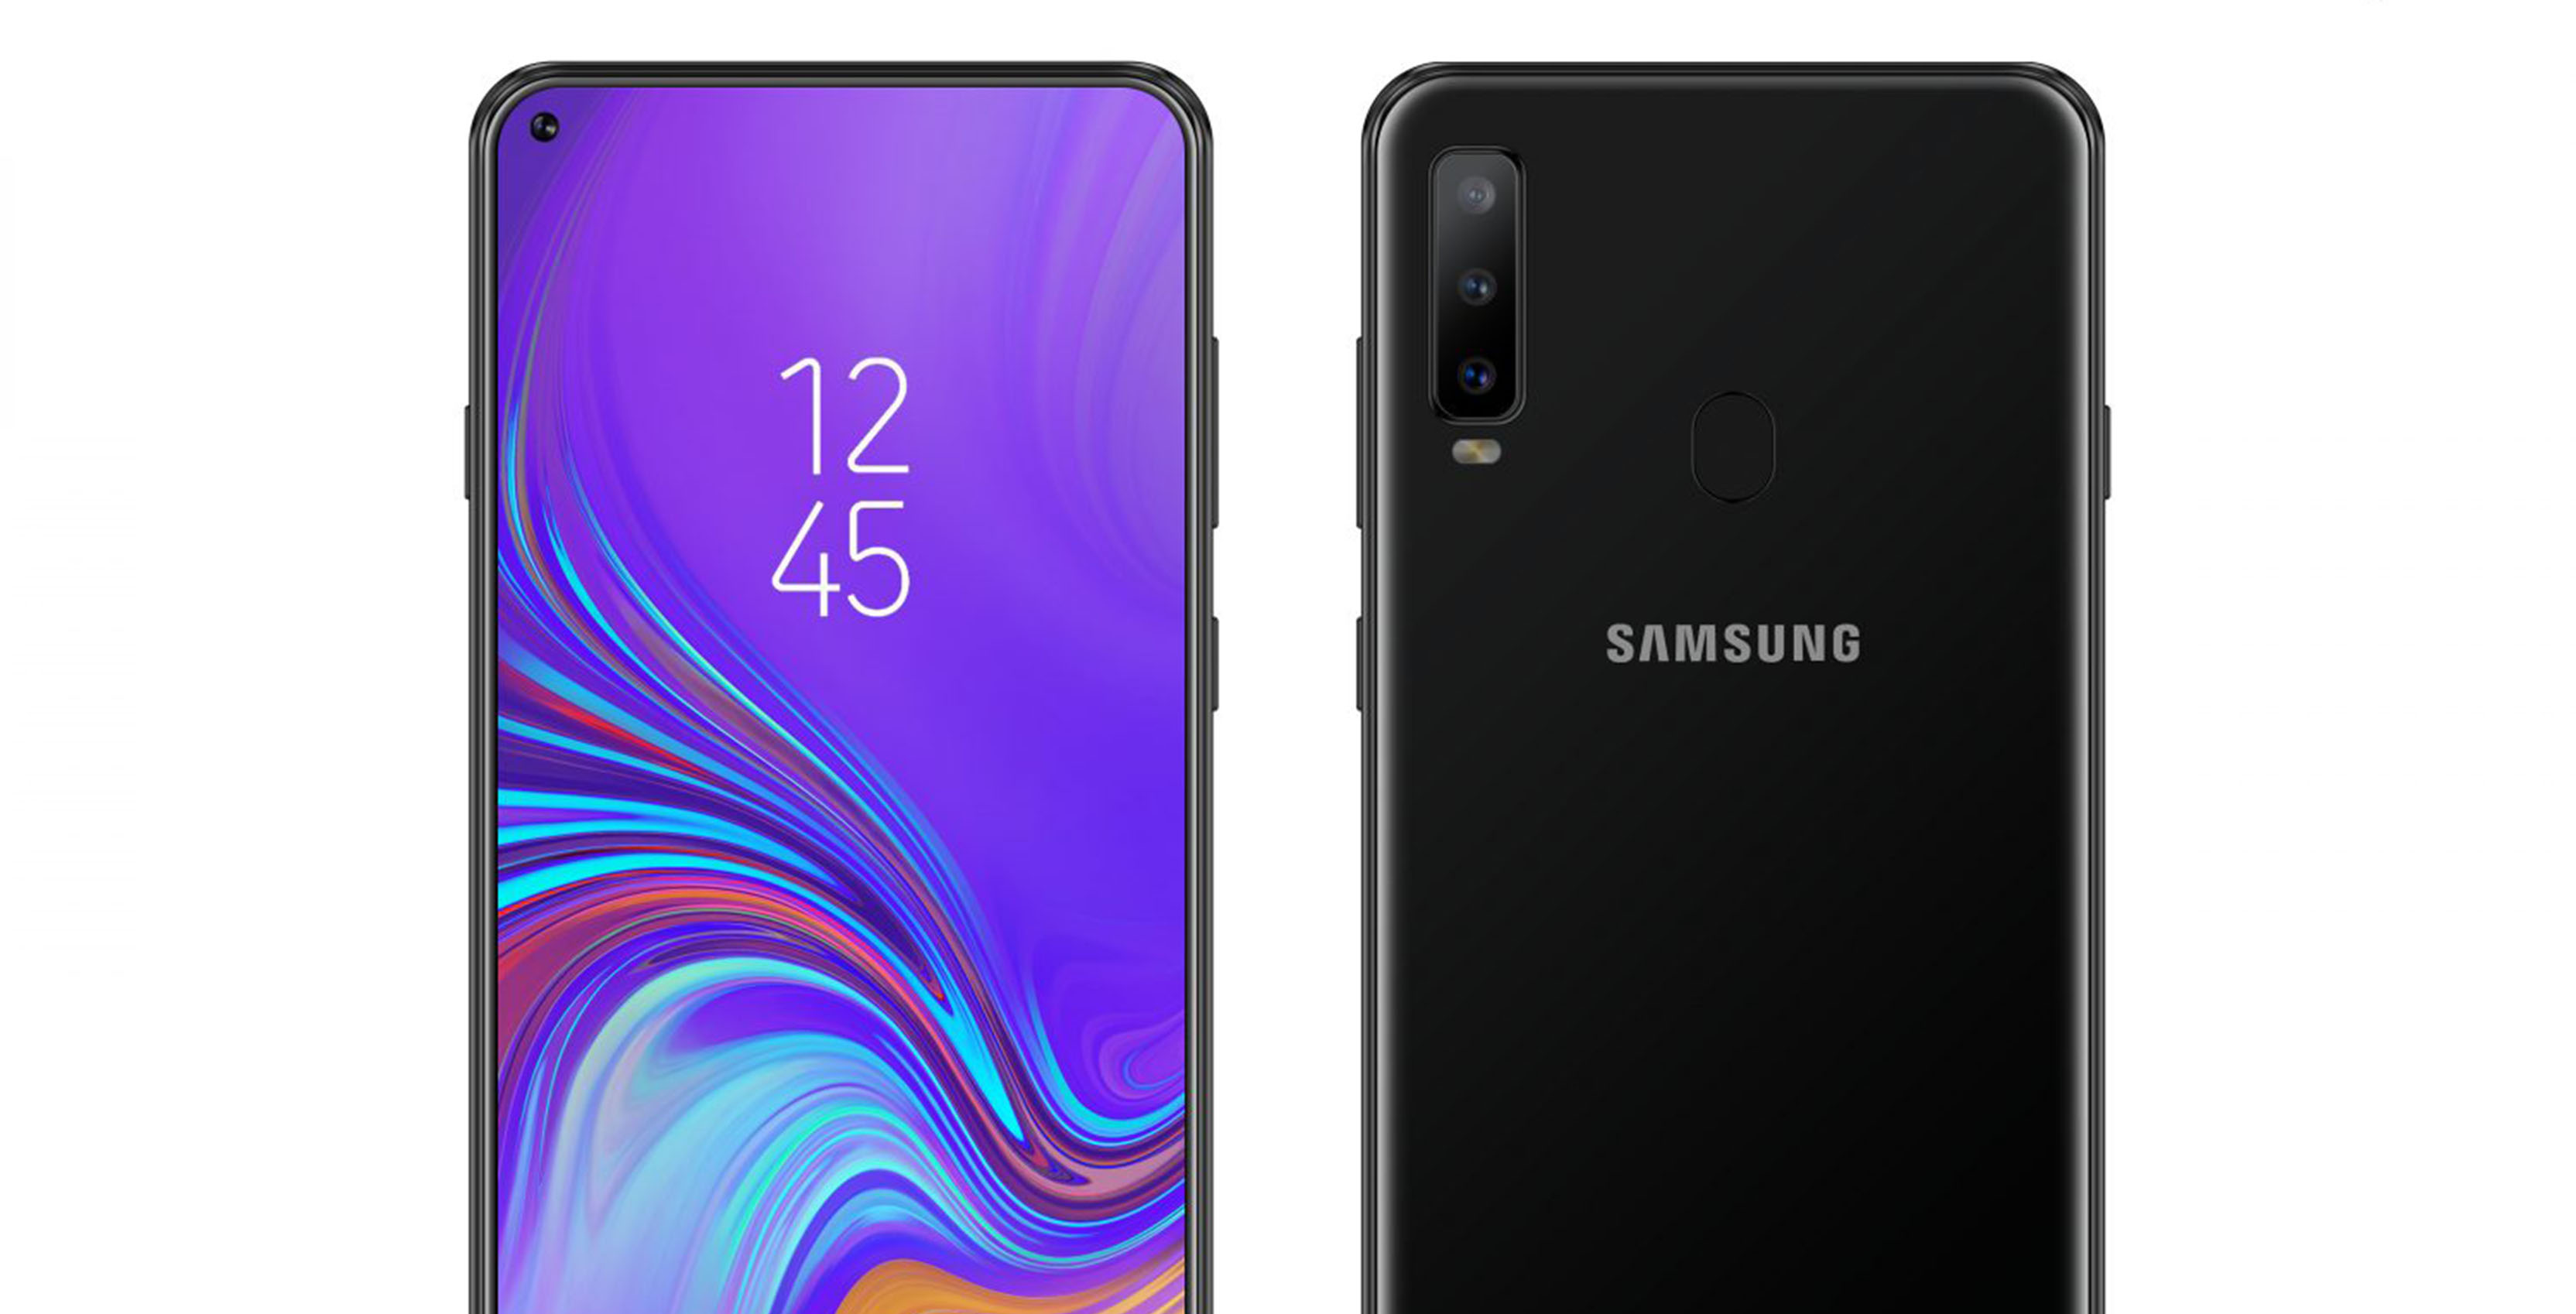 Leaks show Samsungs Galaxy A8s with Infinity O display camera 3328x1698